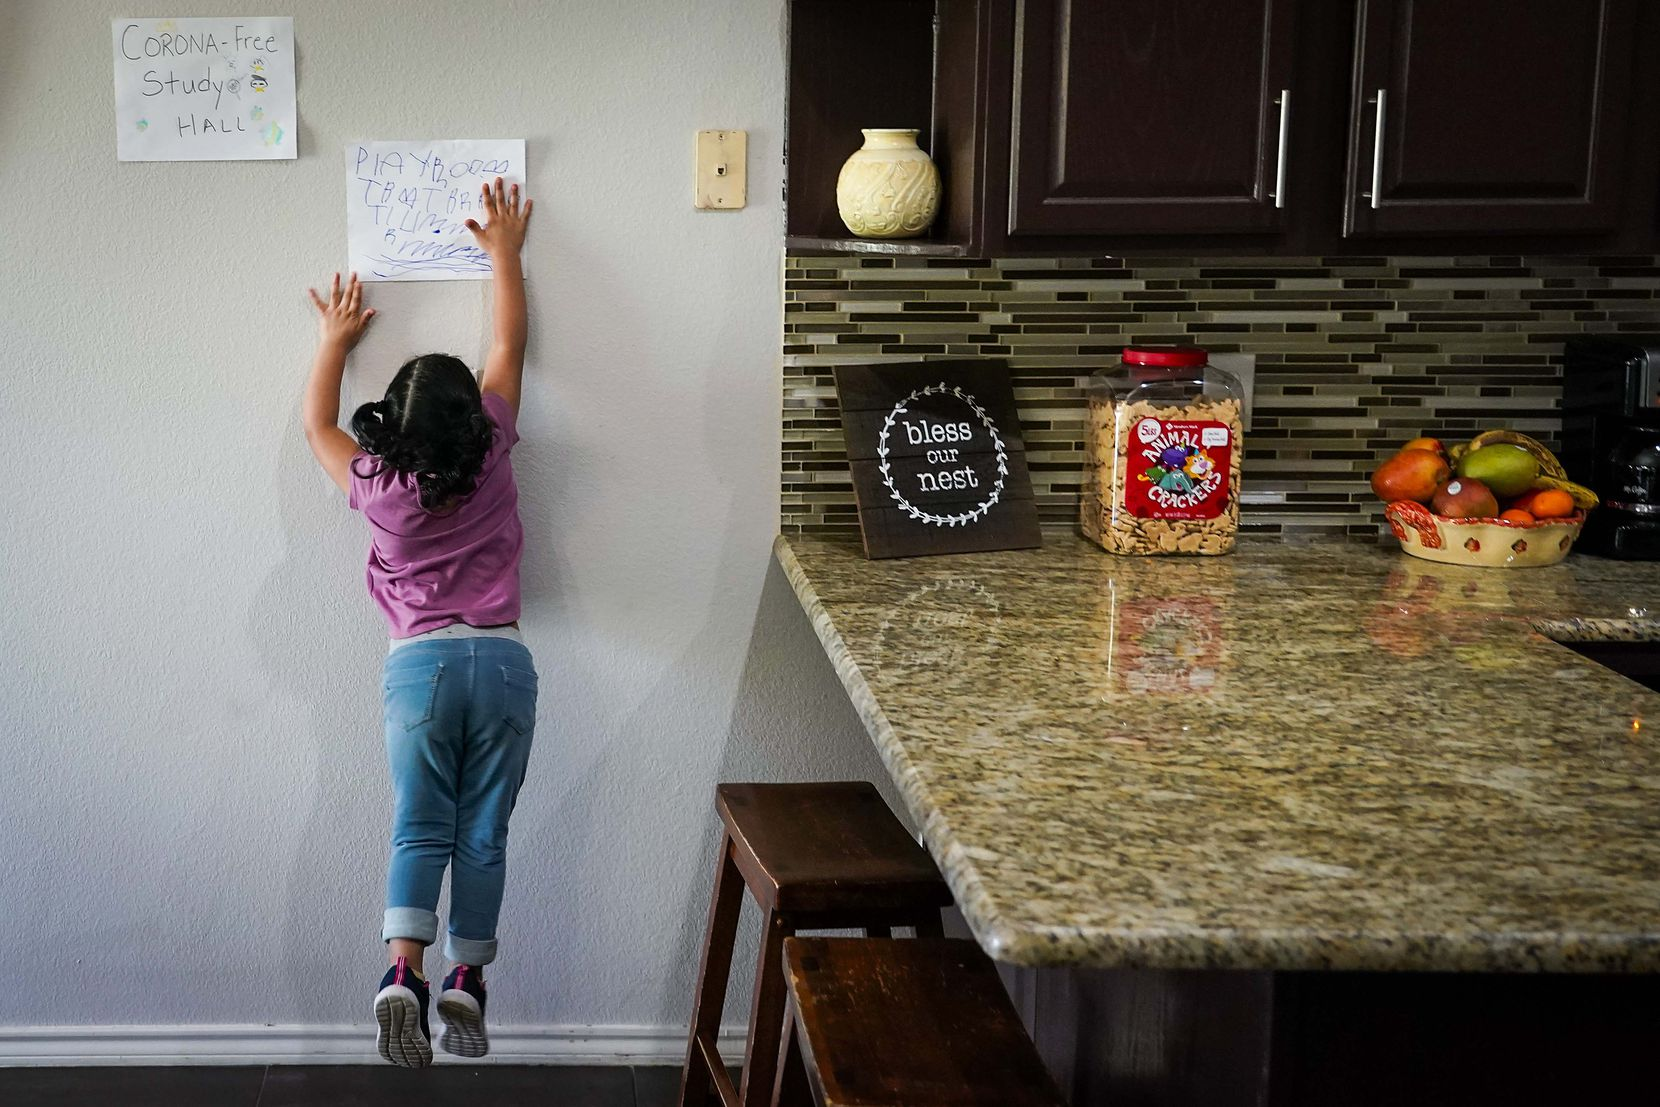 """Kamila Cabrera, 4, jumped to touch a sign in the kitchen of her family's Grand Prairie home labeling it a """"play room,"""" next to one for a """"corona-free study hall"""" after distance learning began in March. North Texas families had to adopt new school routines when the pandemic hit."""